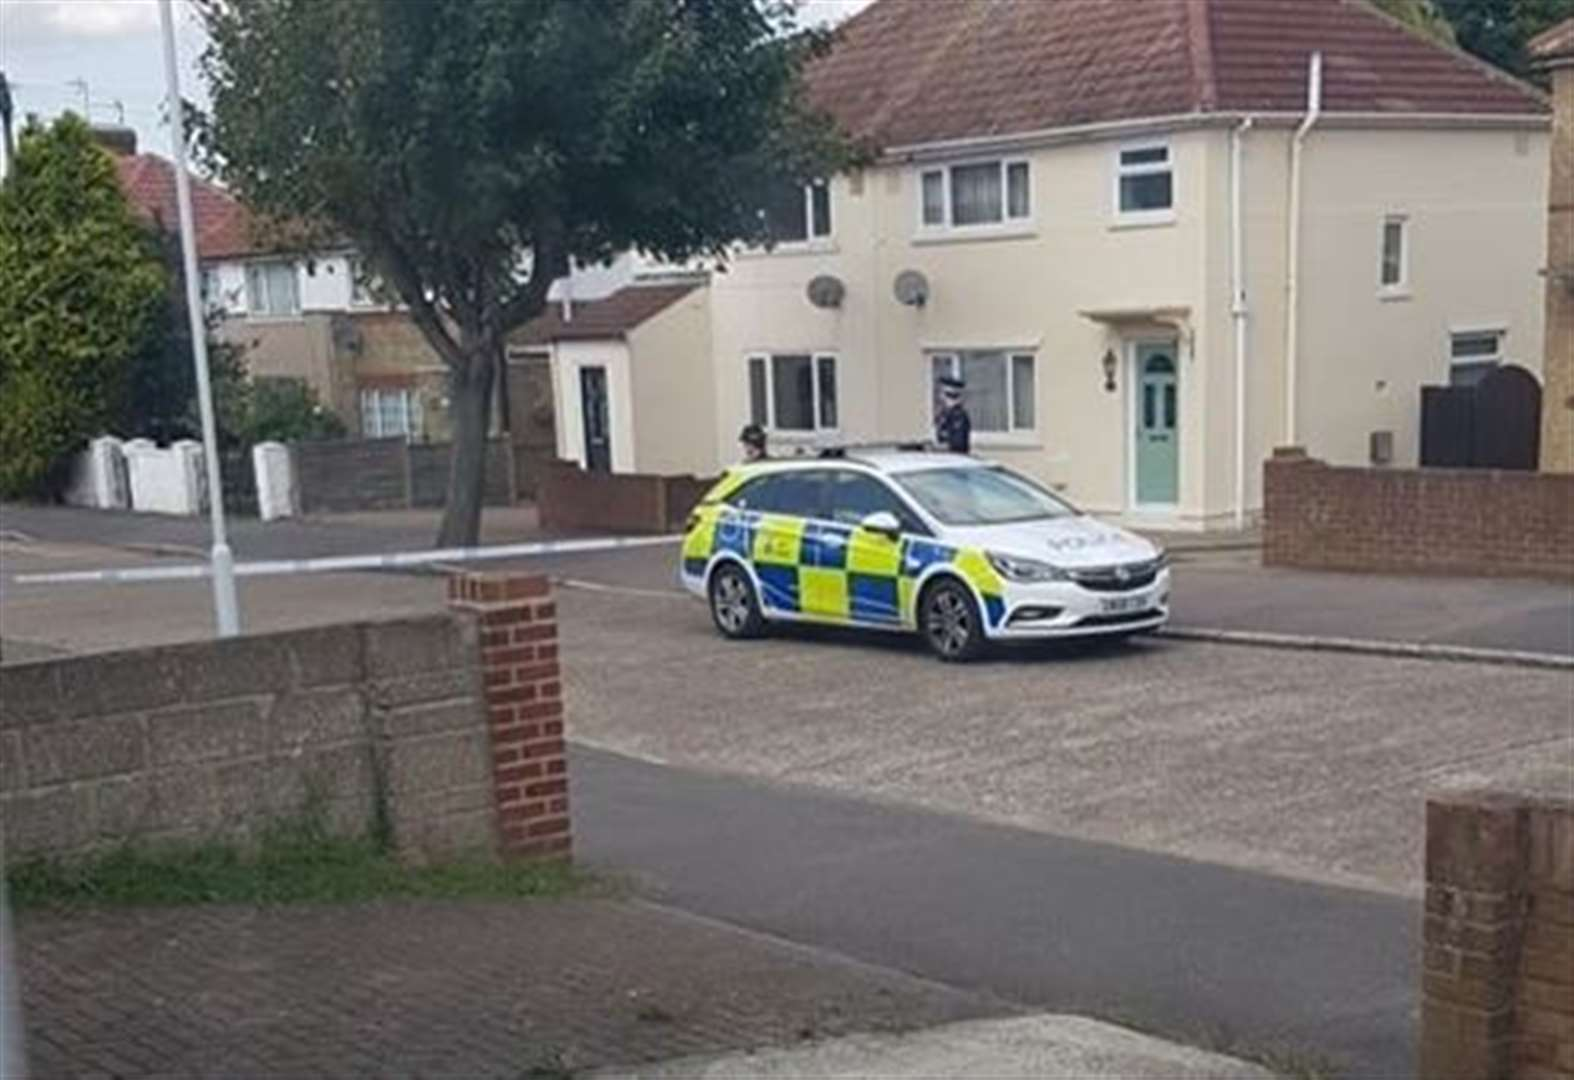 Armed police close road